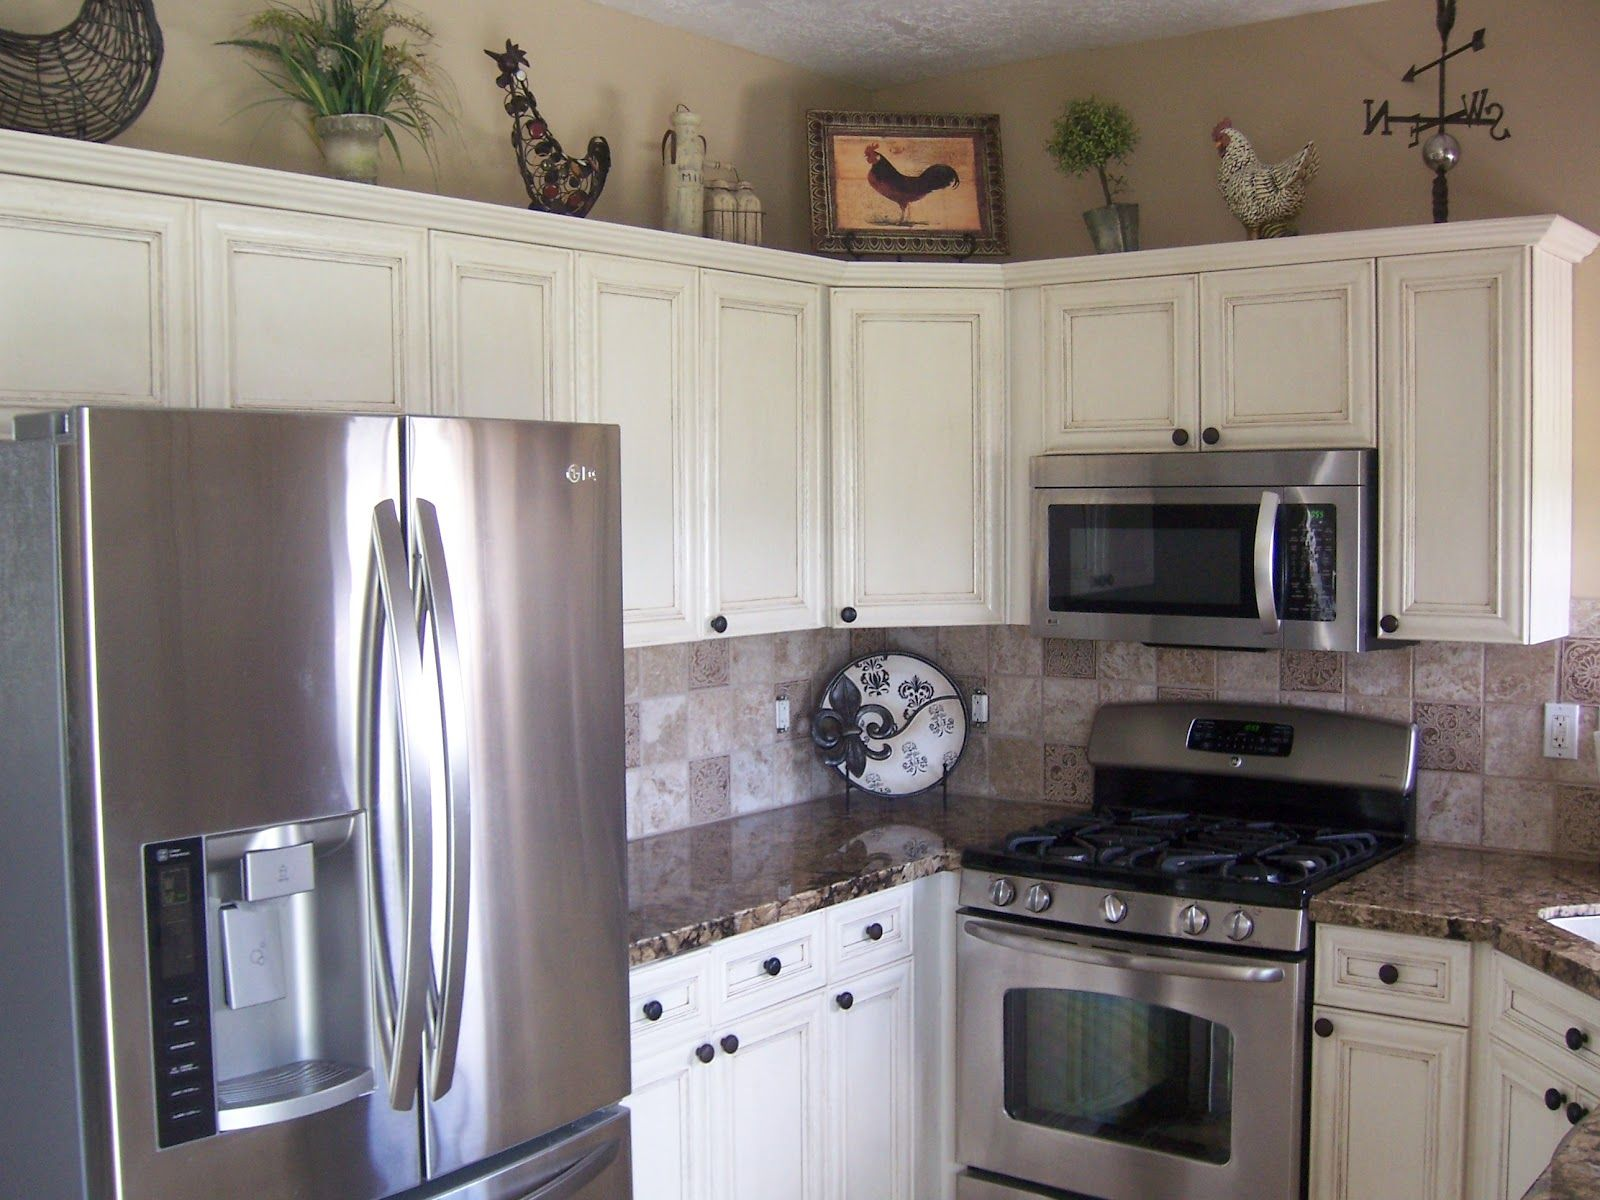 White Kitchen Stainless Steel Appliances white kitchen cabinets with stainless appliances | winda 7 furniture